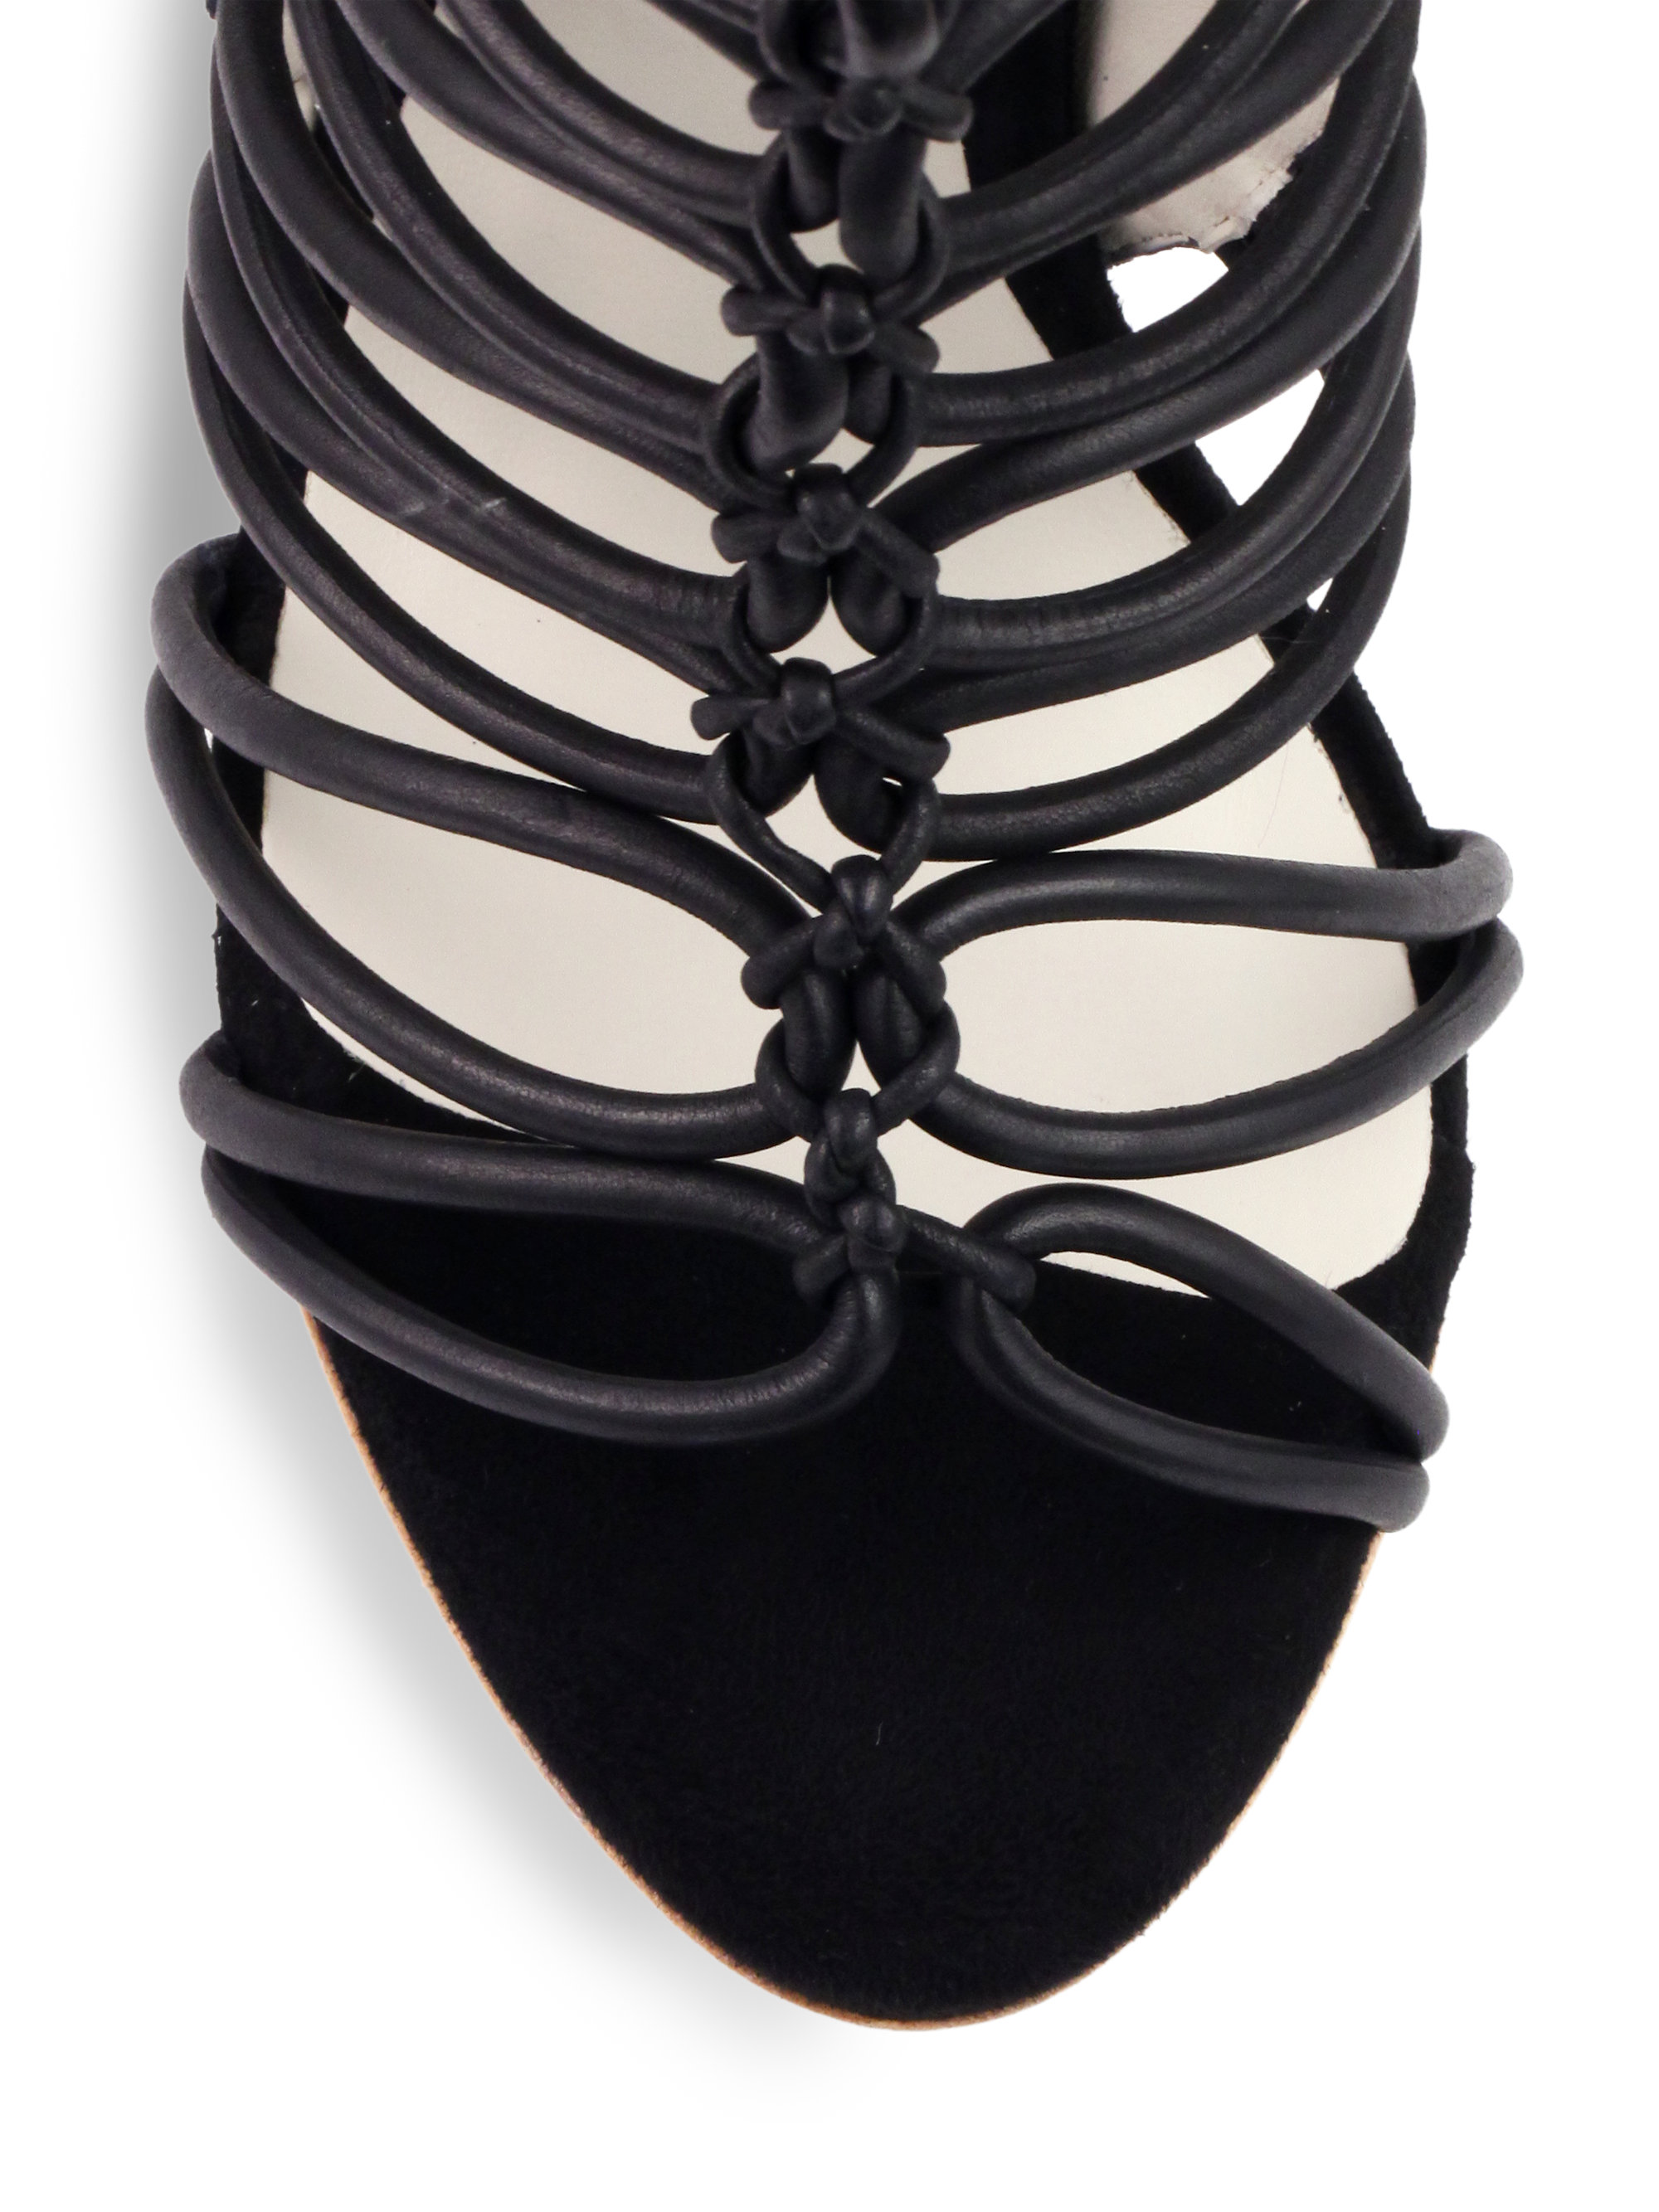 Sophia Webster Leather Clementine Strappy To-the-knee